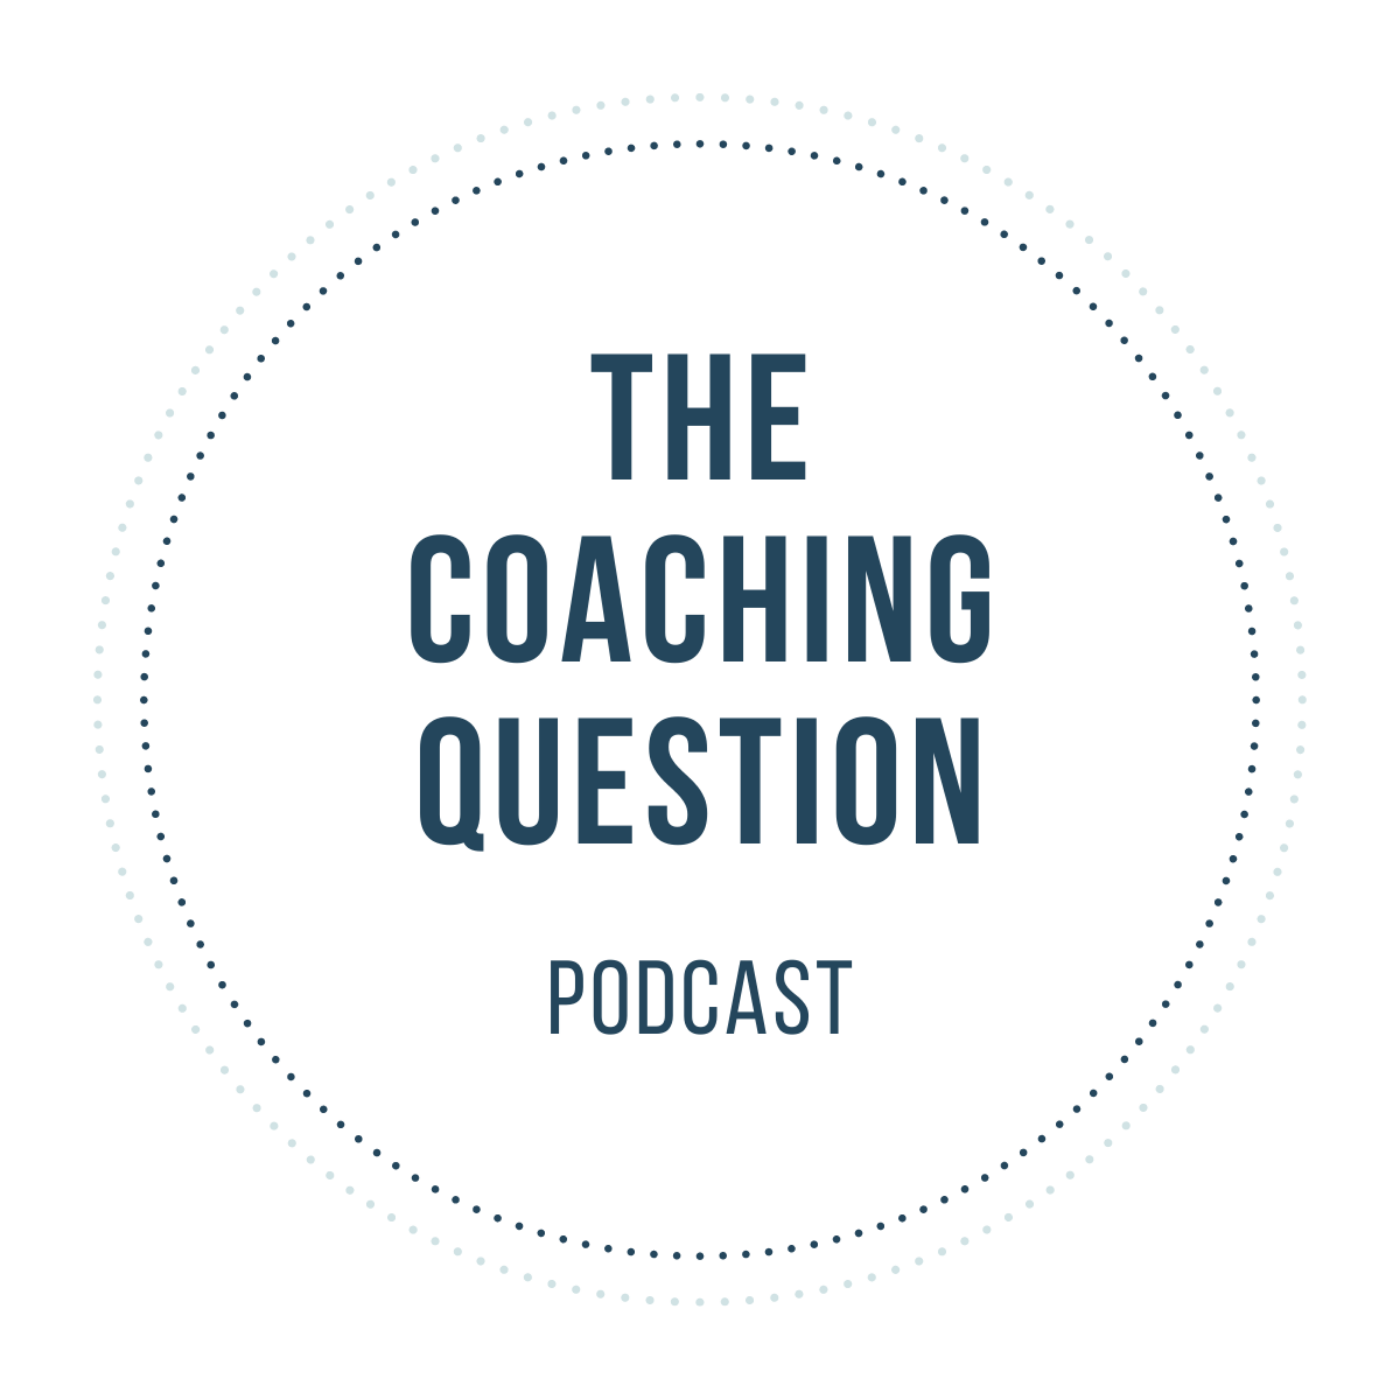 Artwork for podcast The Coaching Question